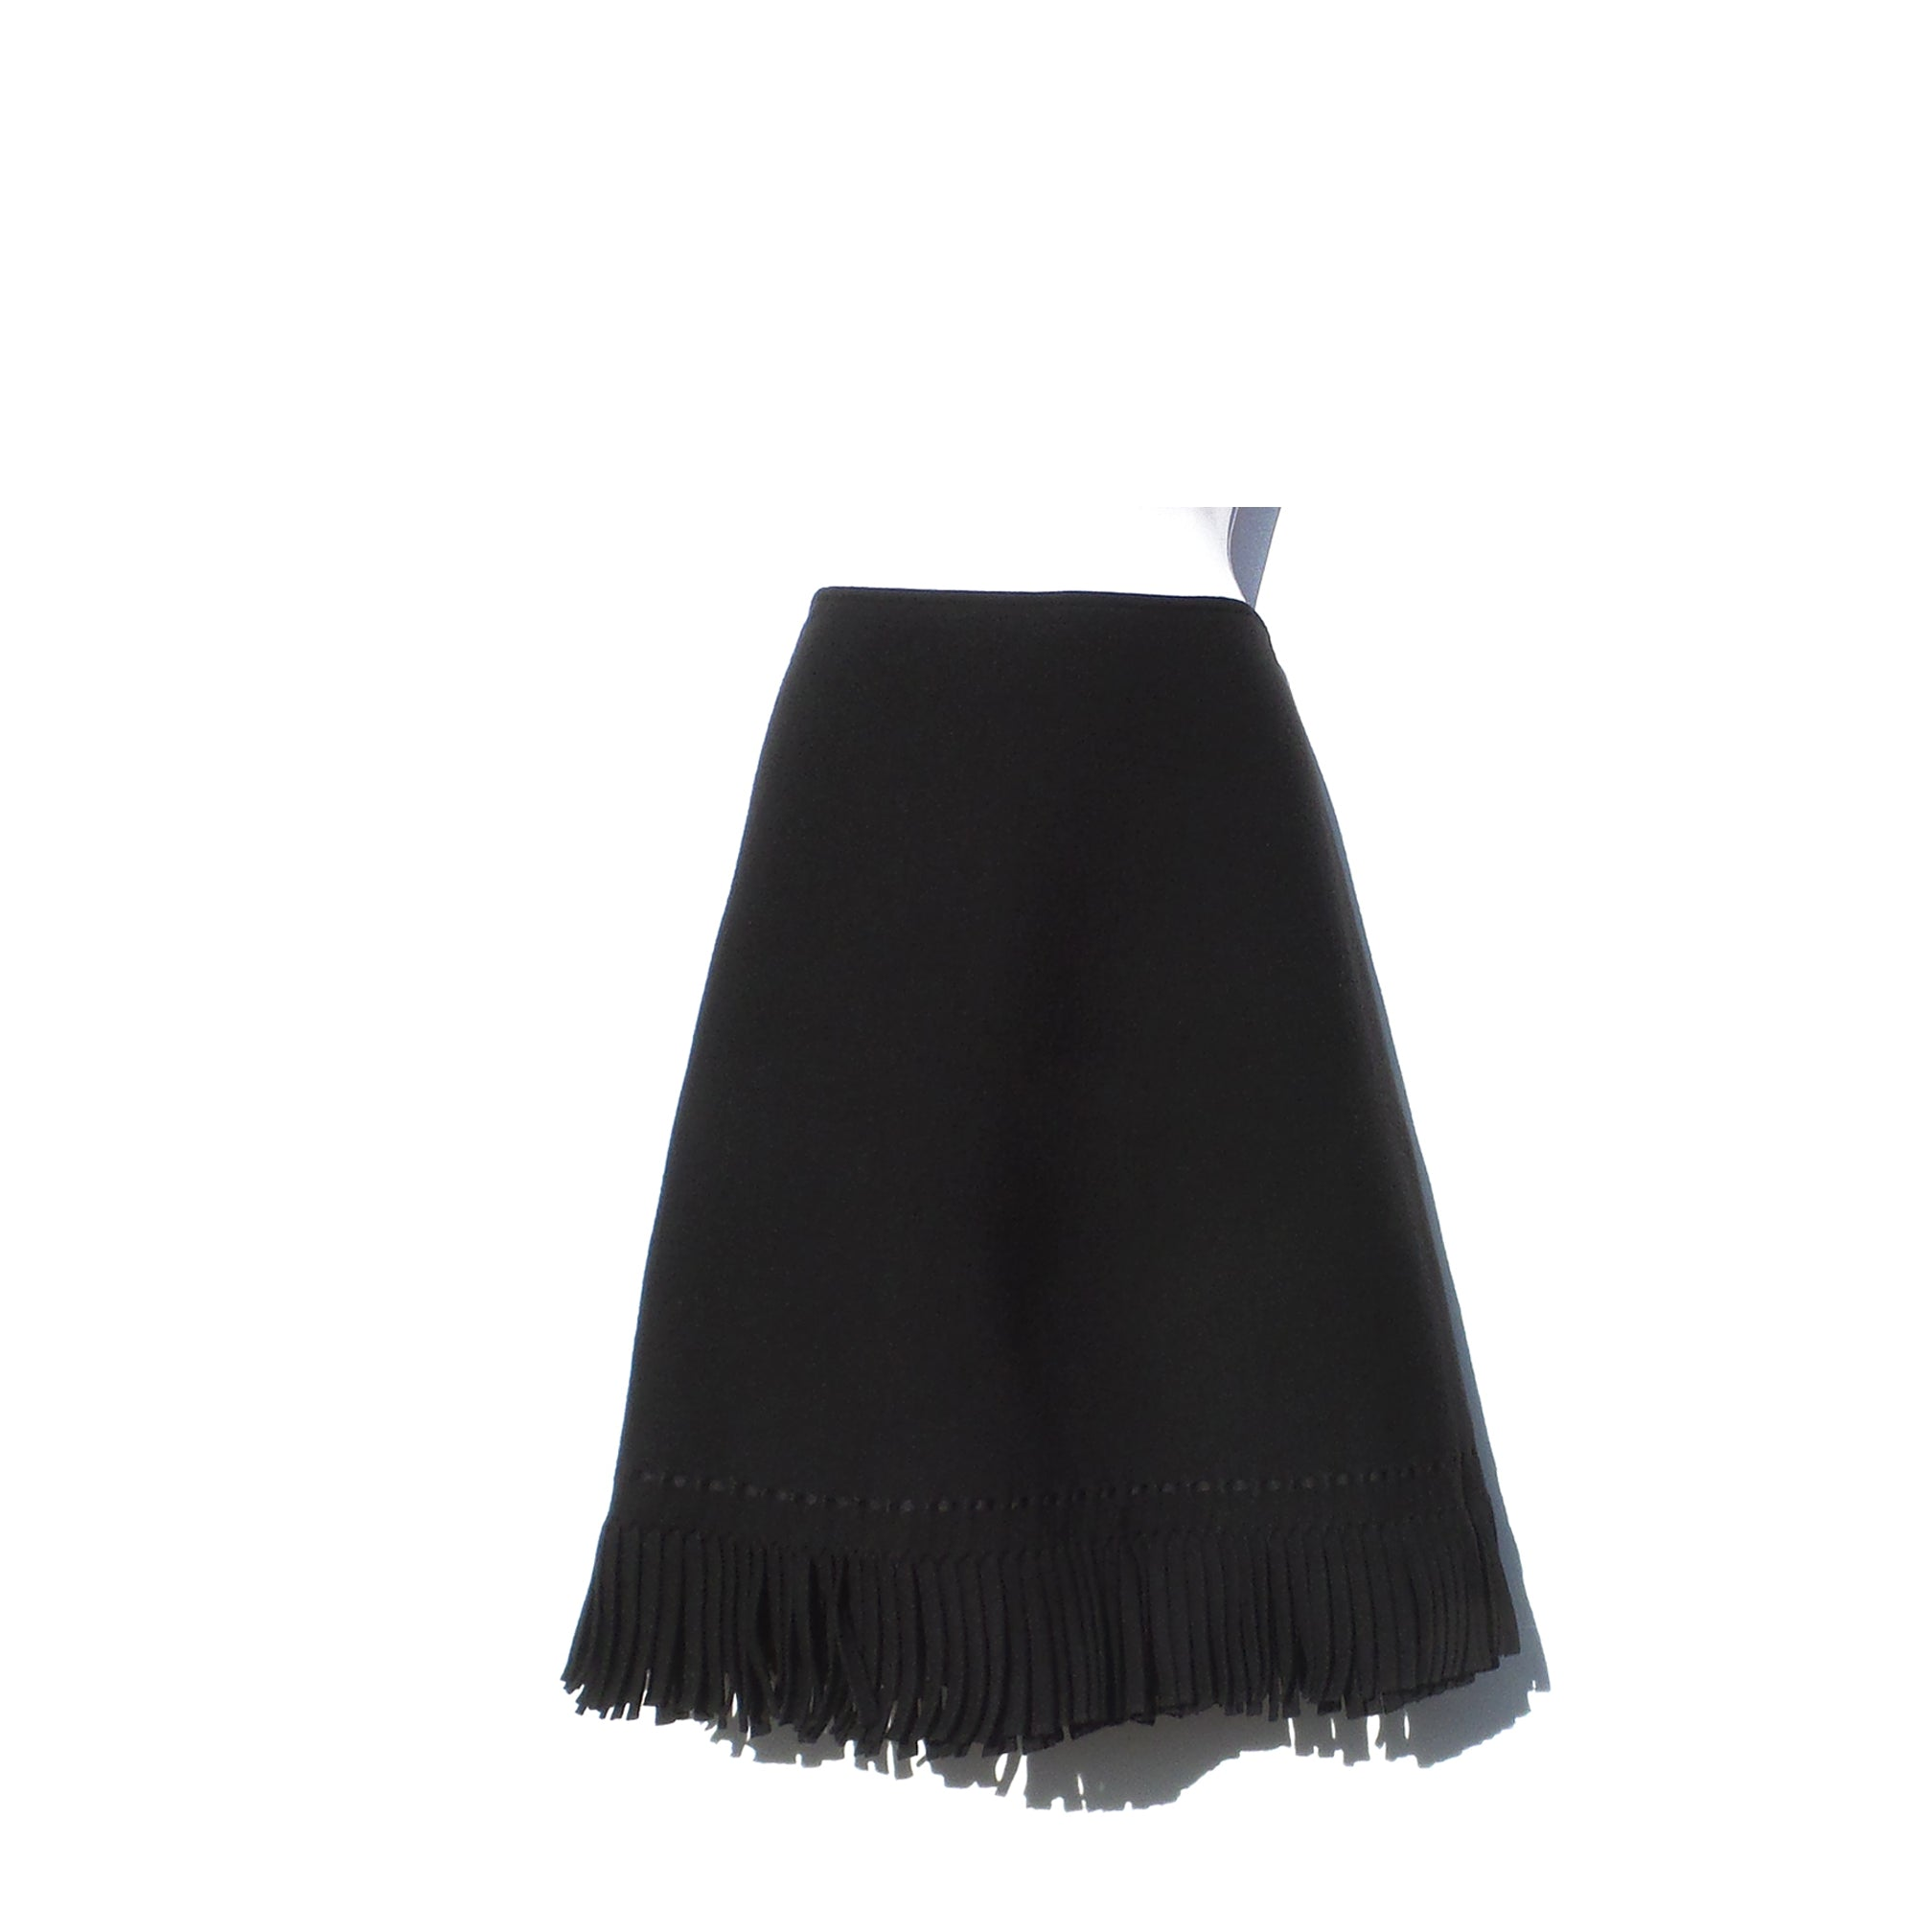 ALAÏA AW17 Black Wool Viscose Double Layer Fringe Trim A-Line Skirt FR 44 $2140